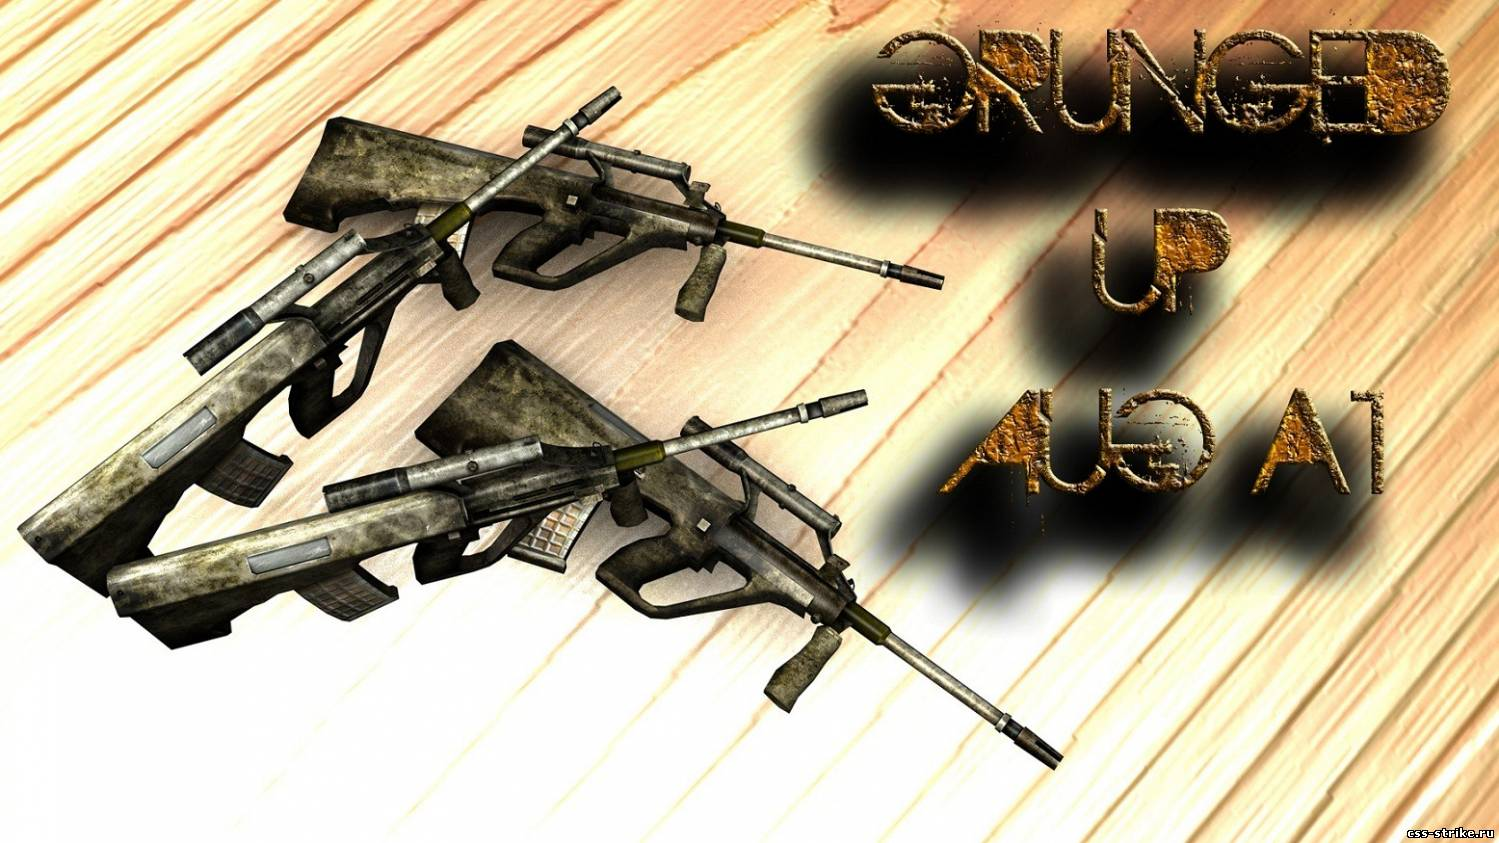 Grunged-Up AUG A1